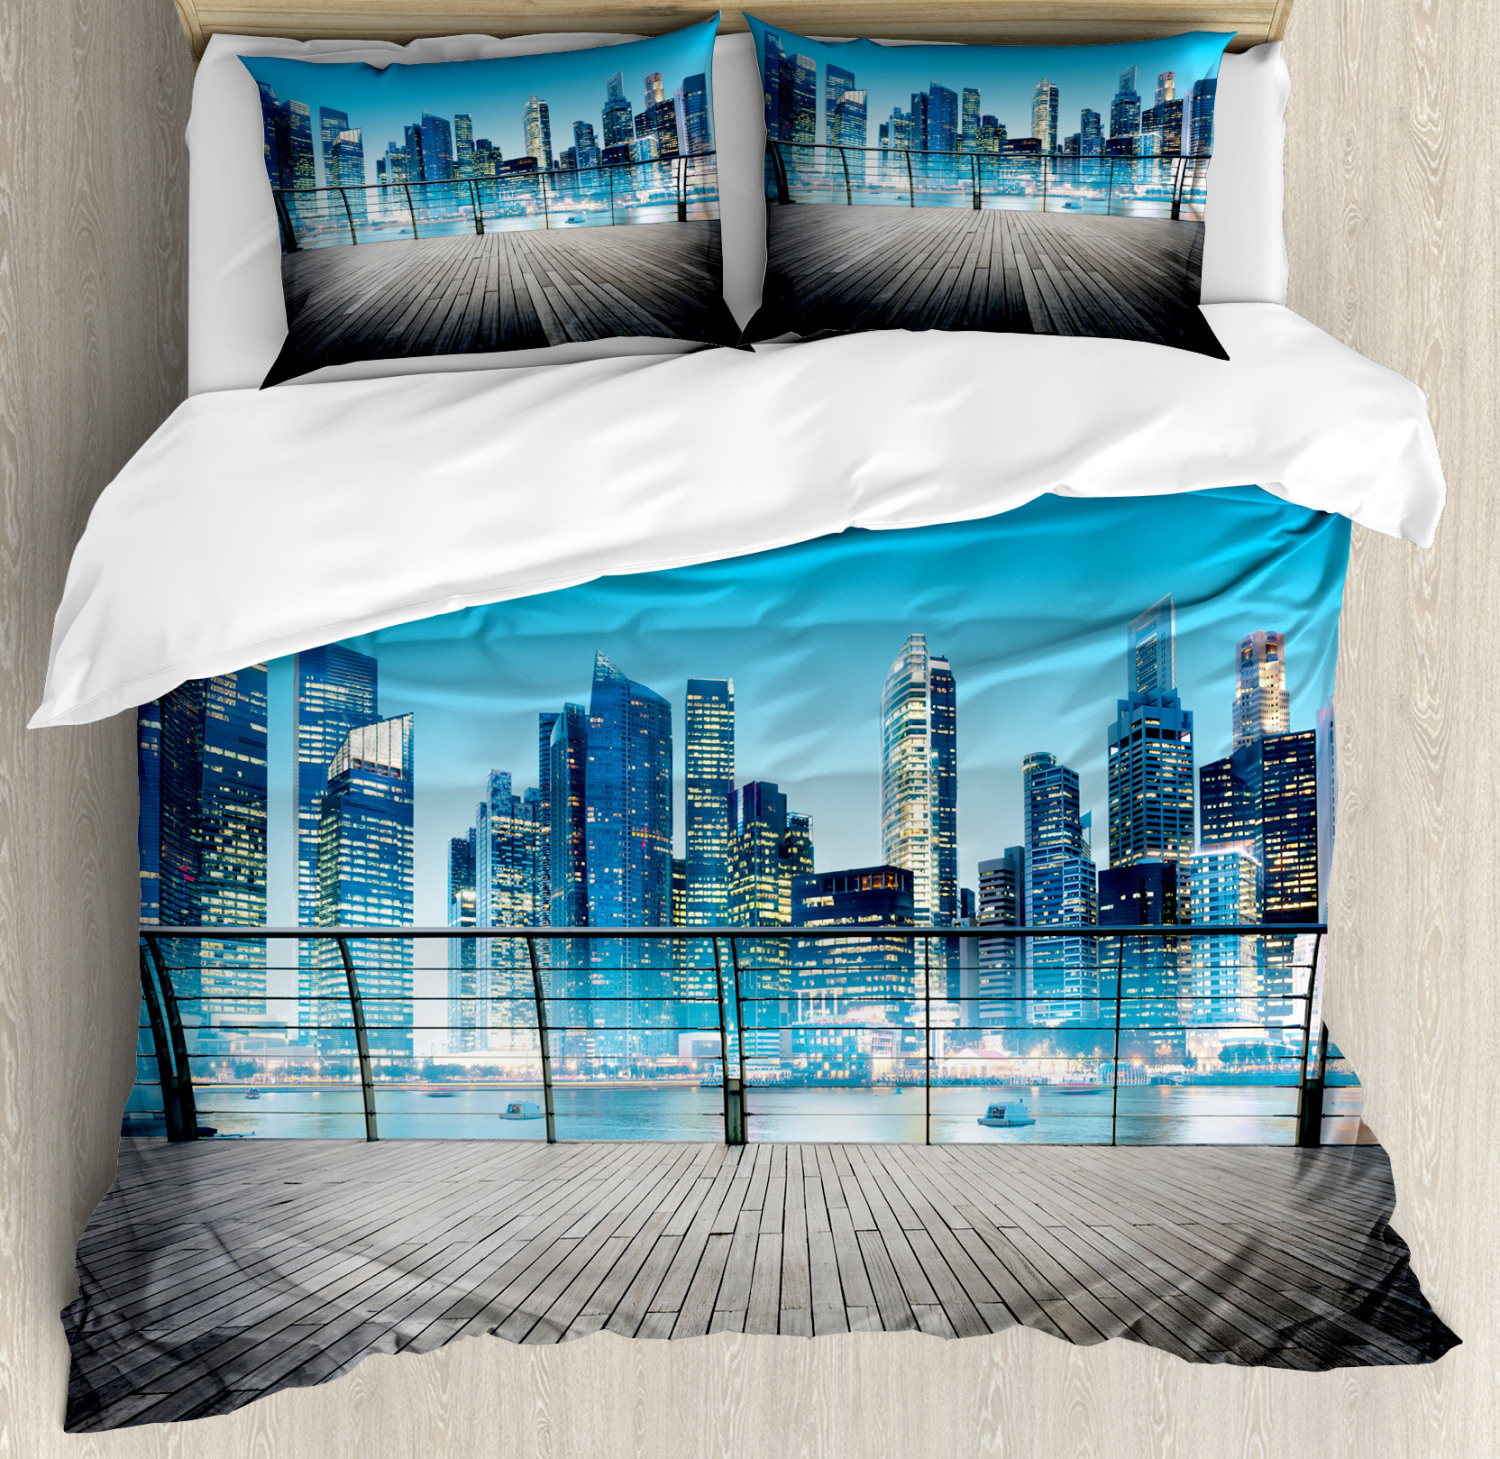 Scenery Duvet Cover Set with Pillow Shams bluerry Skyscrapers Sea Print